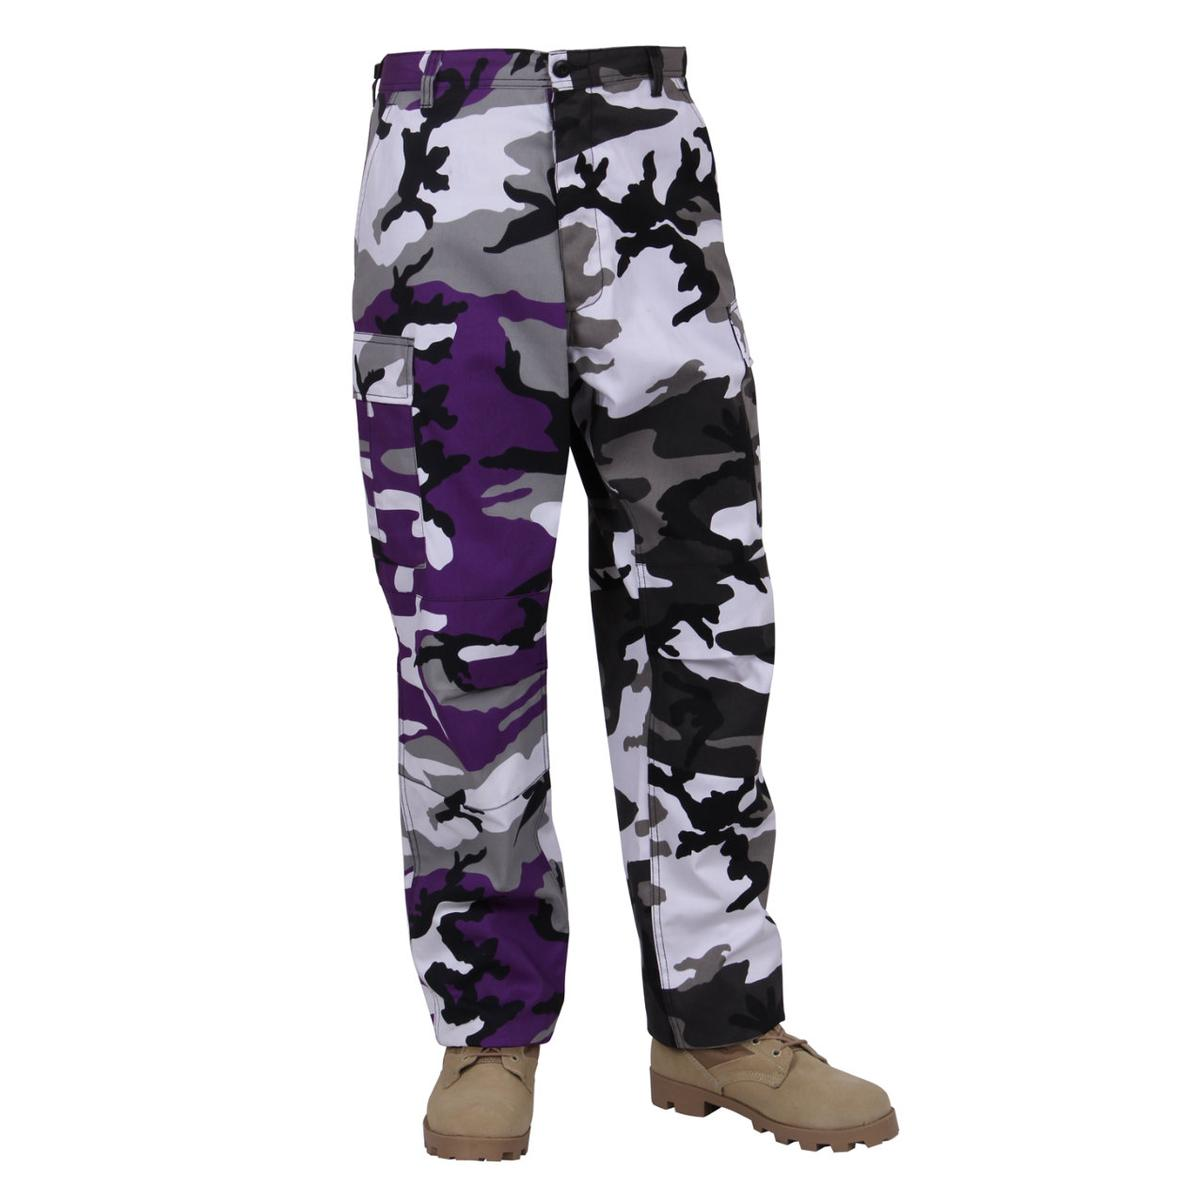 Rothco Two-Tone Camouflage Tactical BDU Cargo Pants